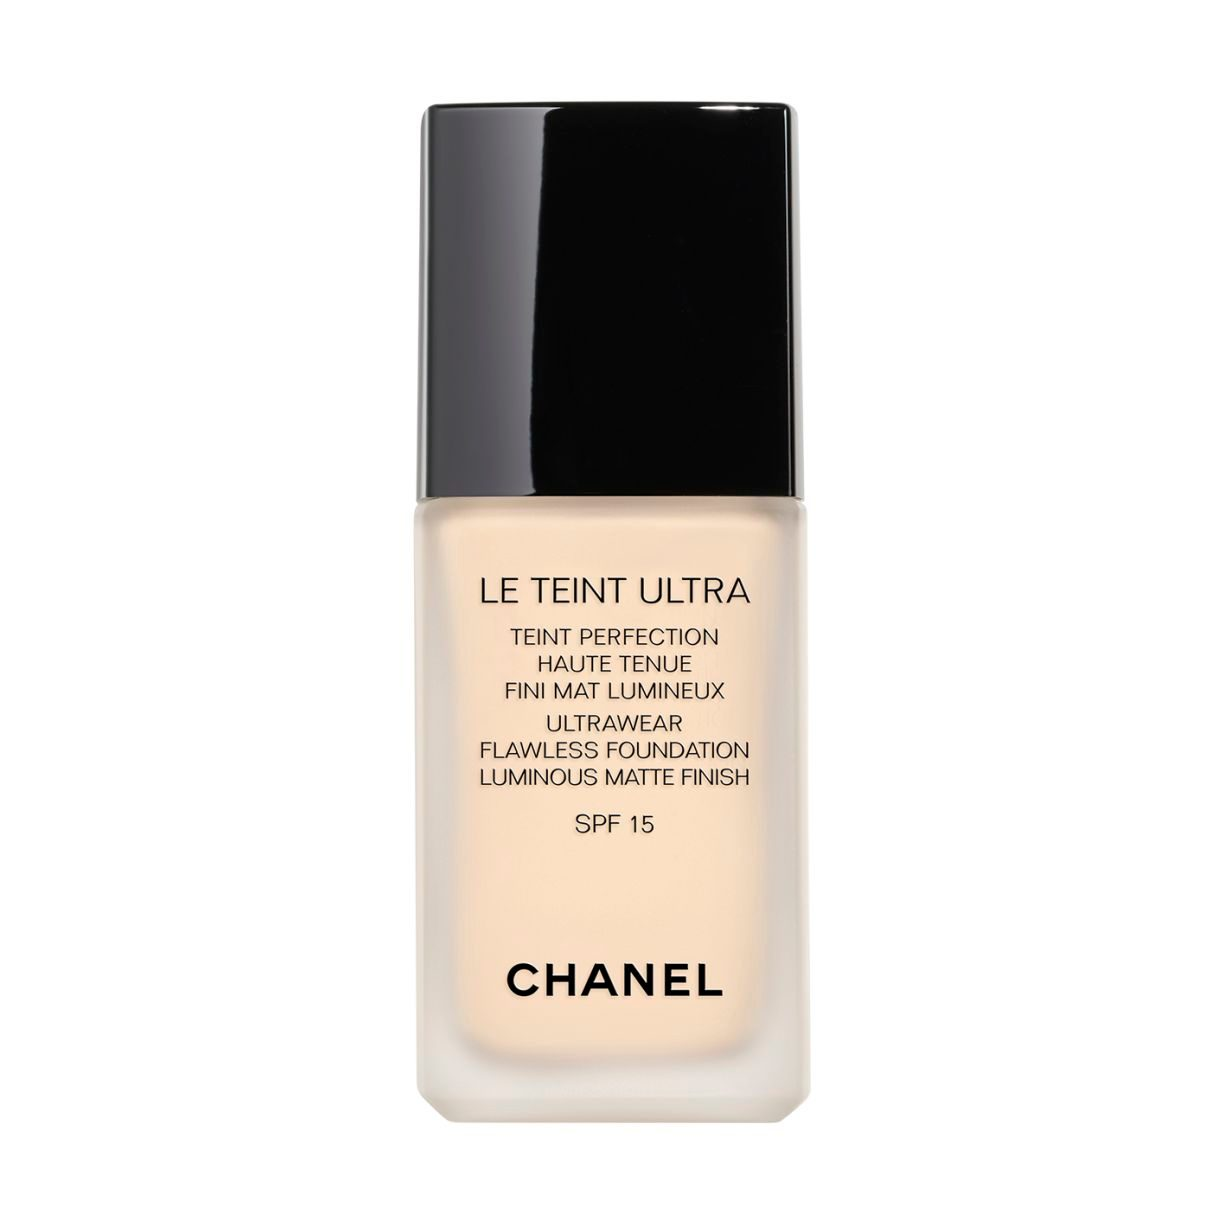 LE TEINT ULTRA ULTRAWEAR FLAWLESS FOUNDATION LUMINOUS MATTE FINISH SPF15